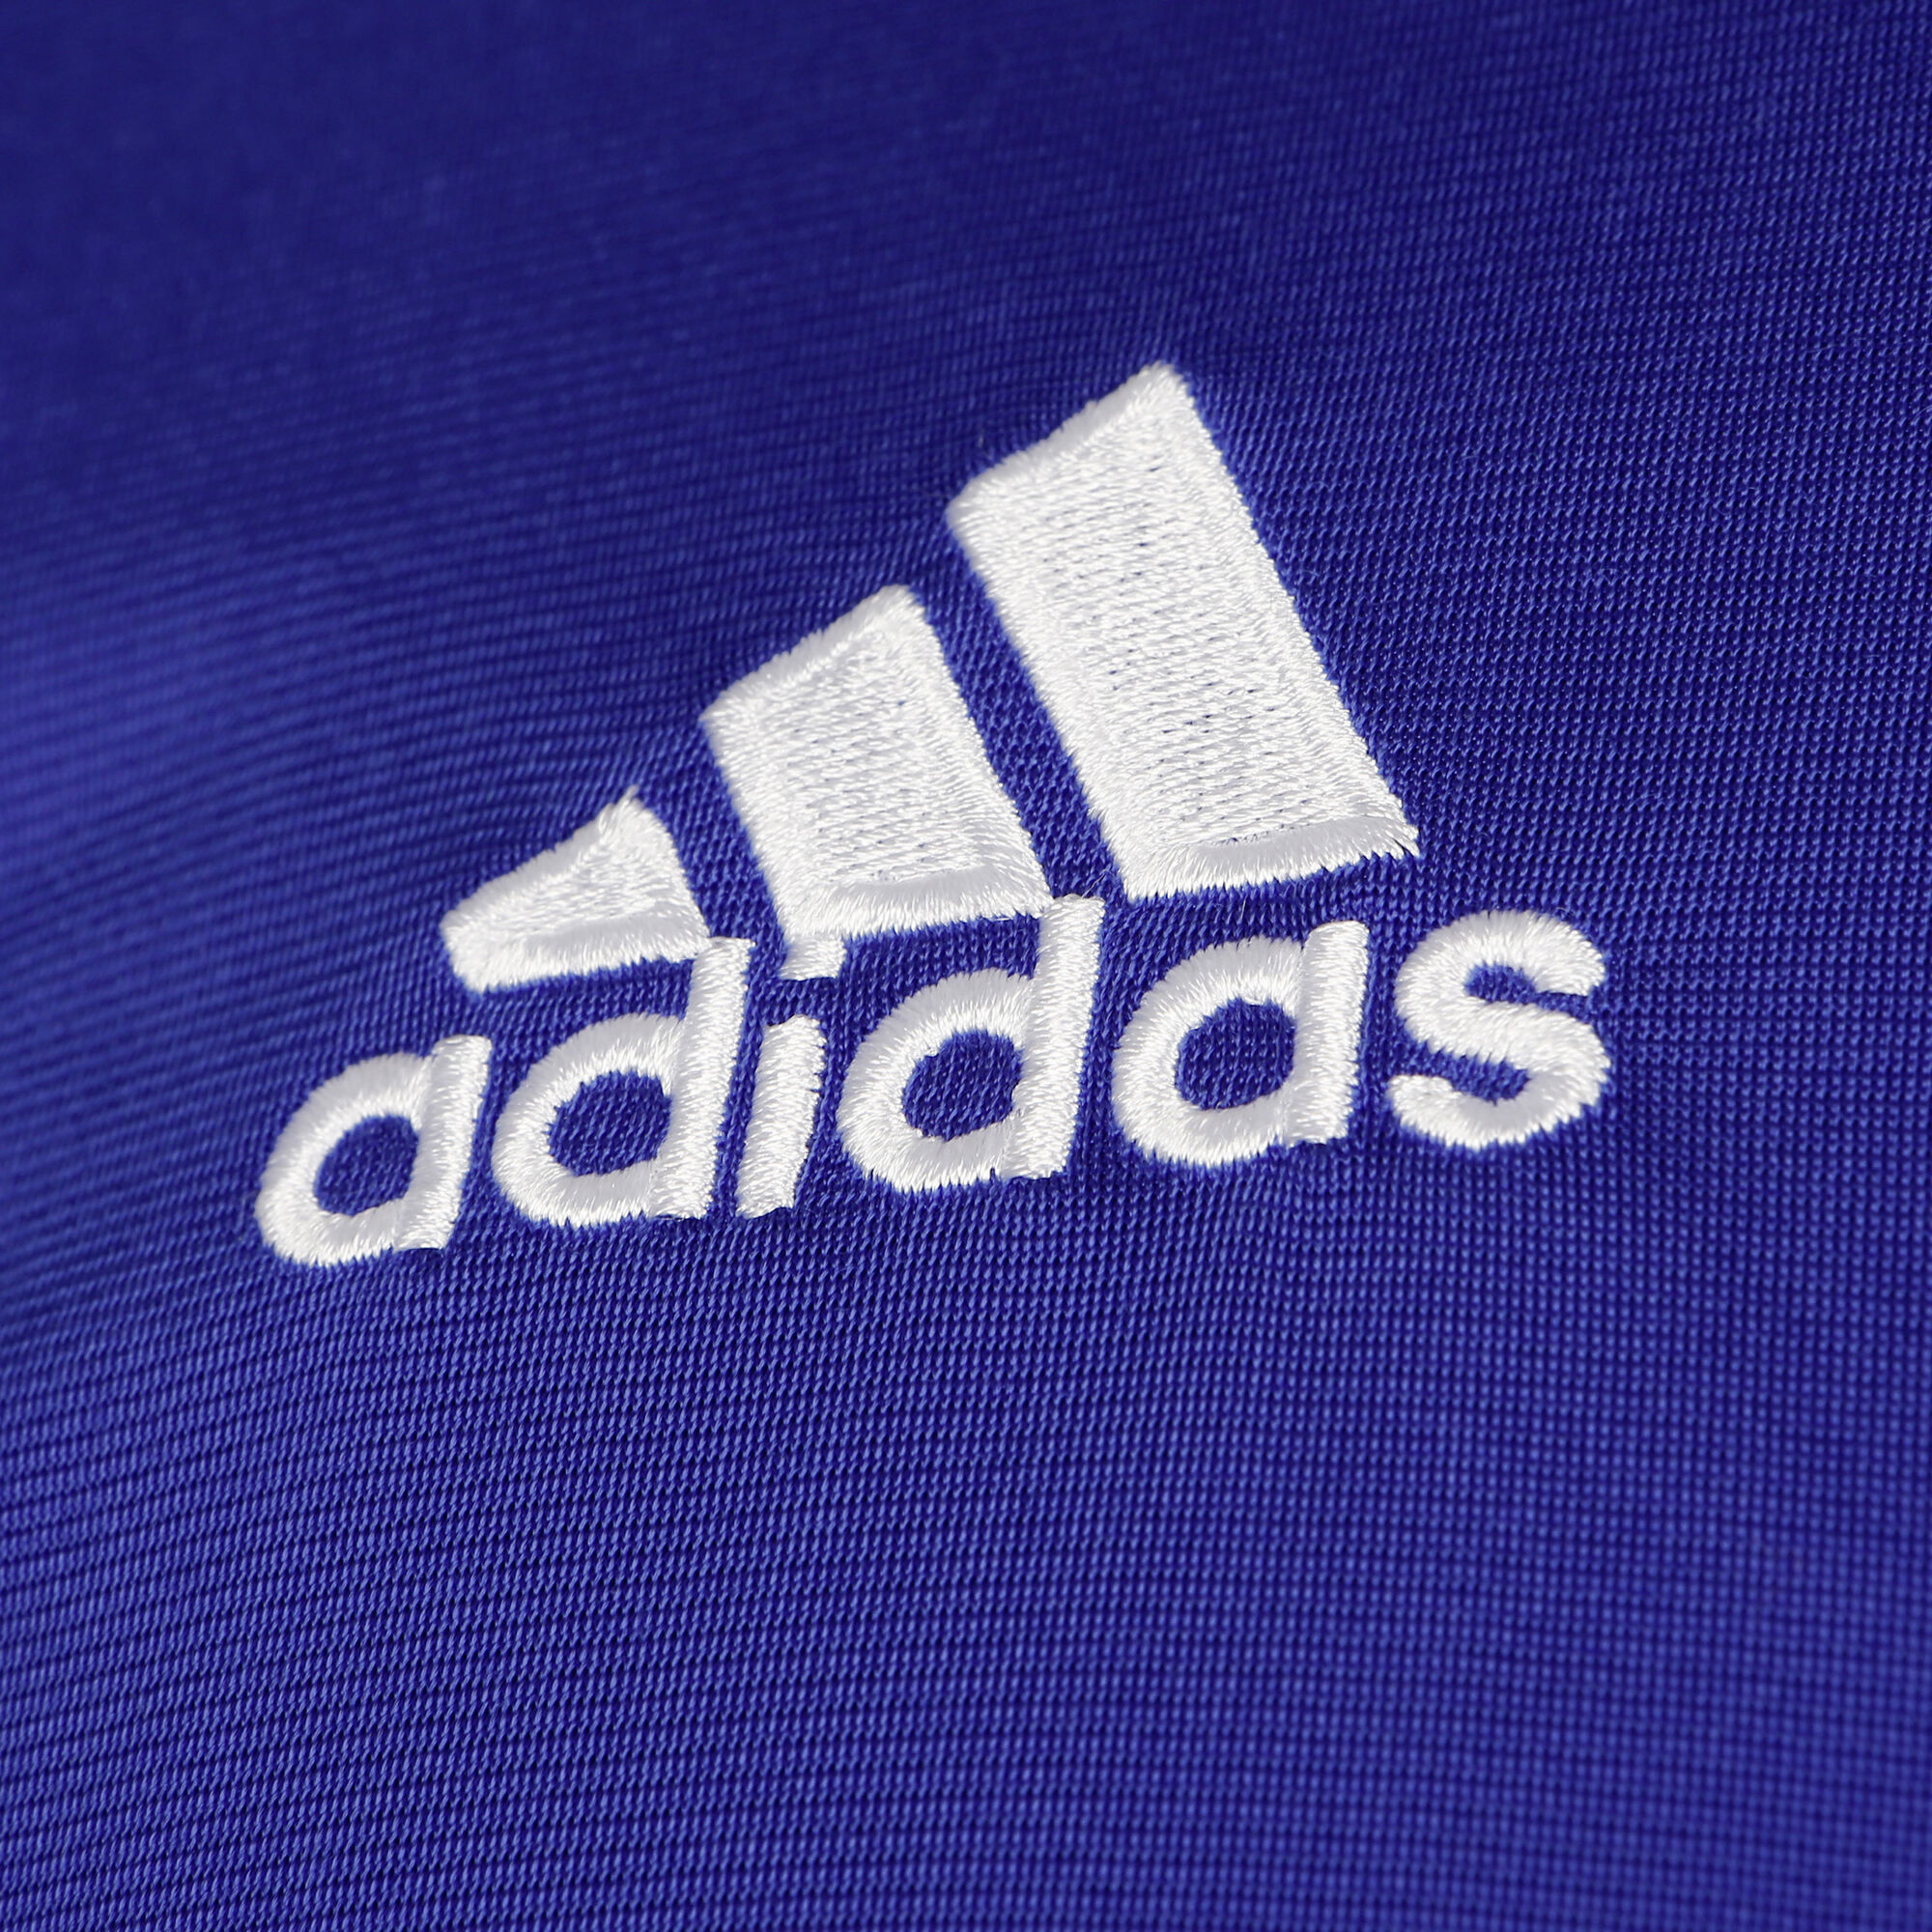 39e74bbe7a42 ... adidas  adidas  adidas  adidas  adidas. Sereno 14 Tracksuit ...